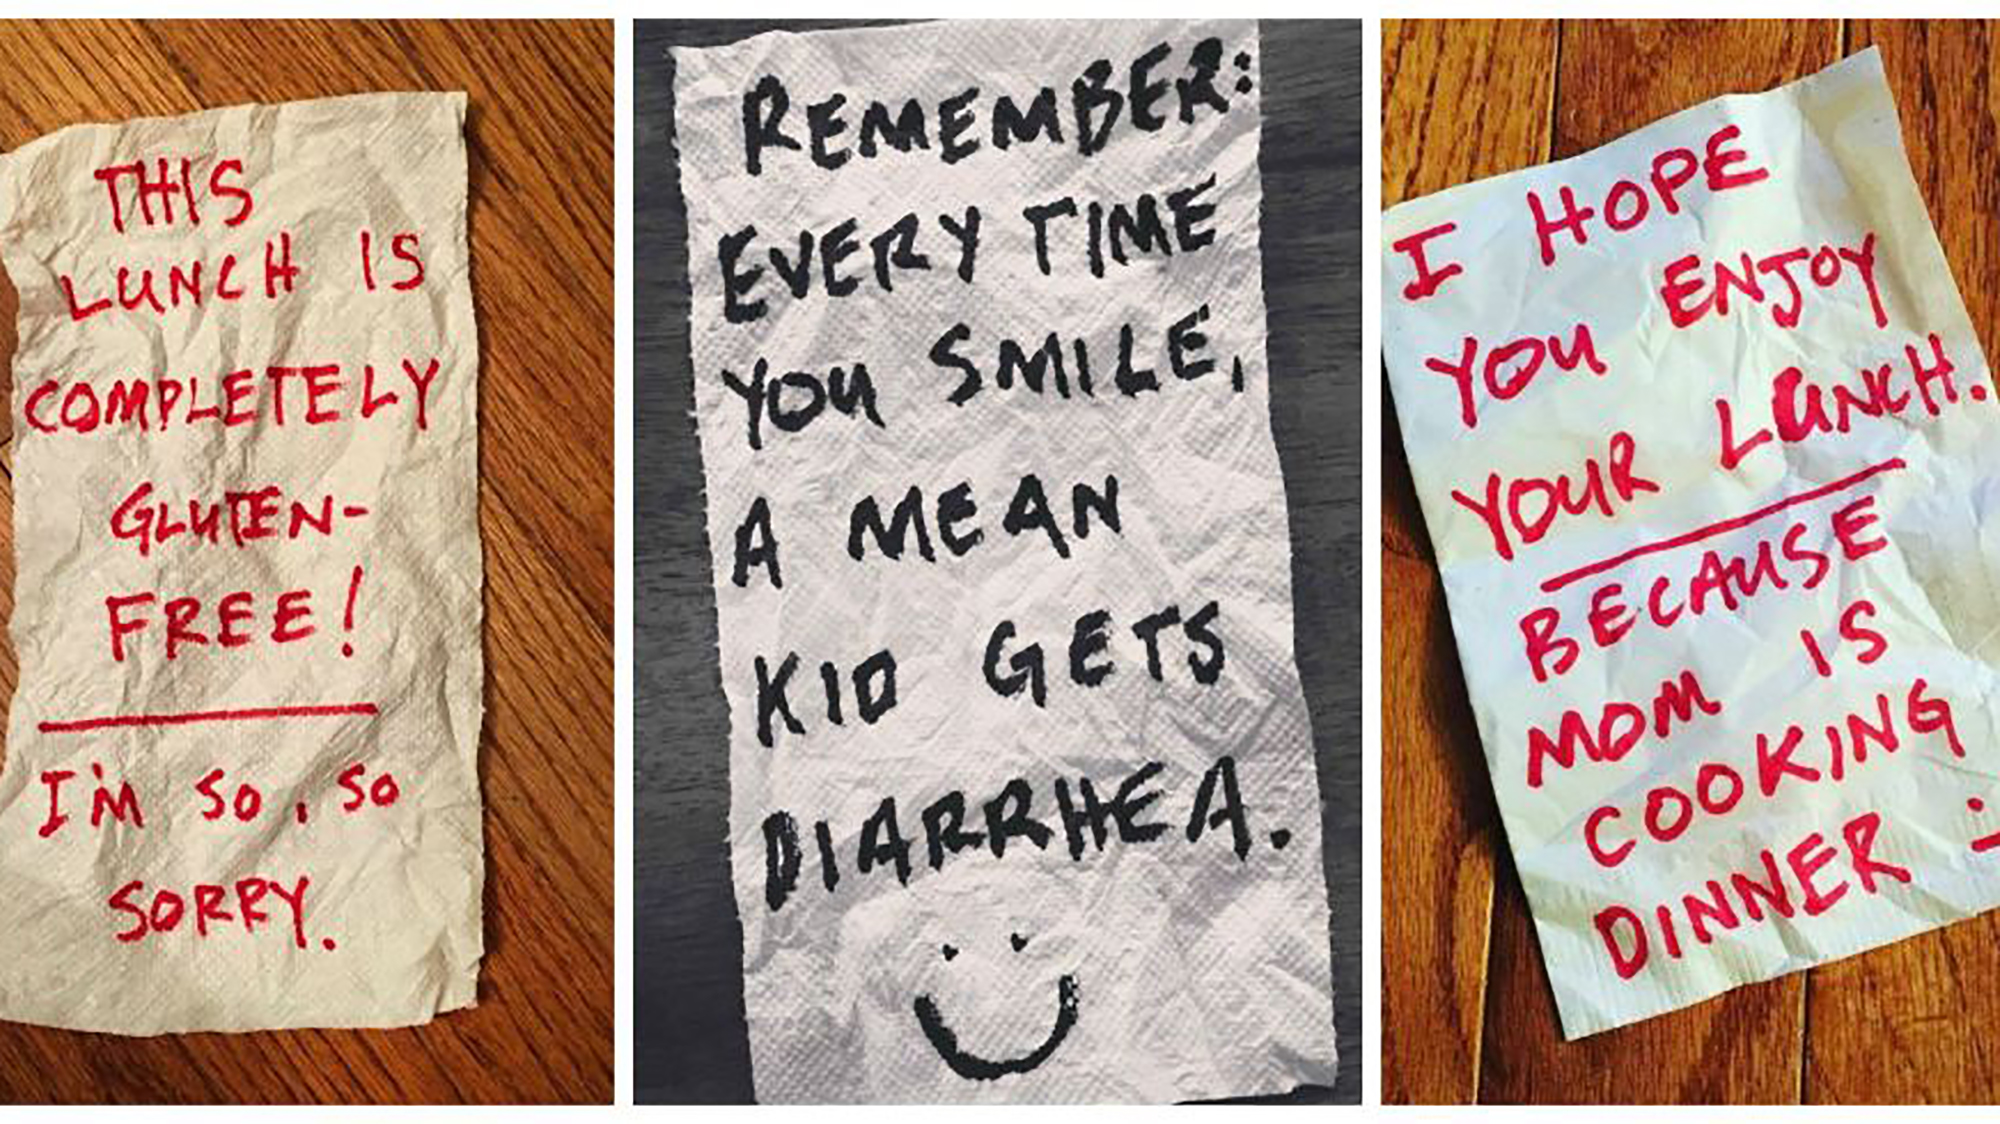 Dad brightens kid's day with hilarious lunchbox notes